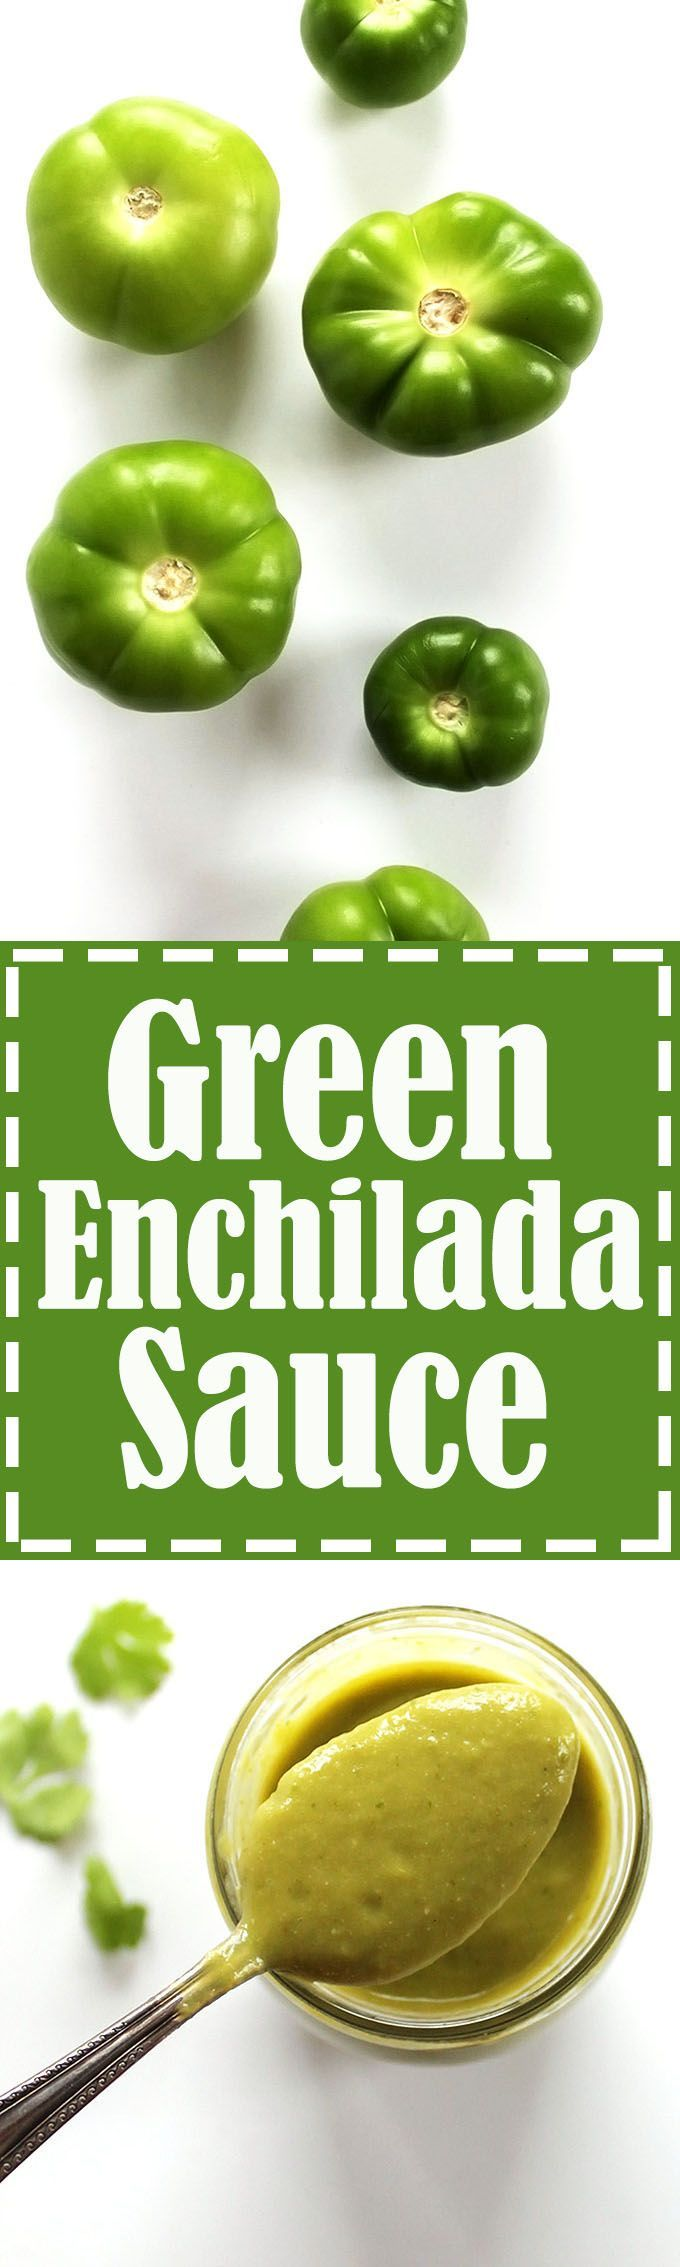 Roasted Green Enchilada Sauce - Creamy spicy-smoky sauce that's great for enchiladas. Also good on tacos, eggs, chicken etc. This recipe is EASY to make: roast everything, then blend! Vegan/Gluten Free. | robustrecipes.com